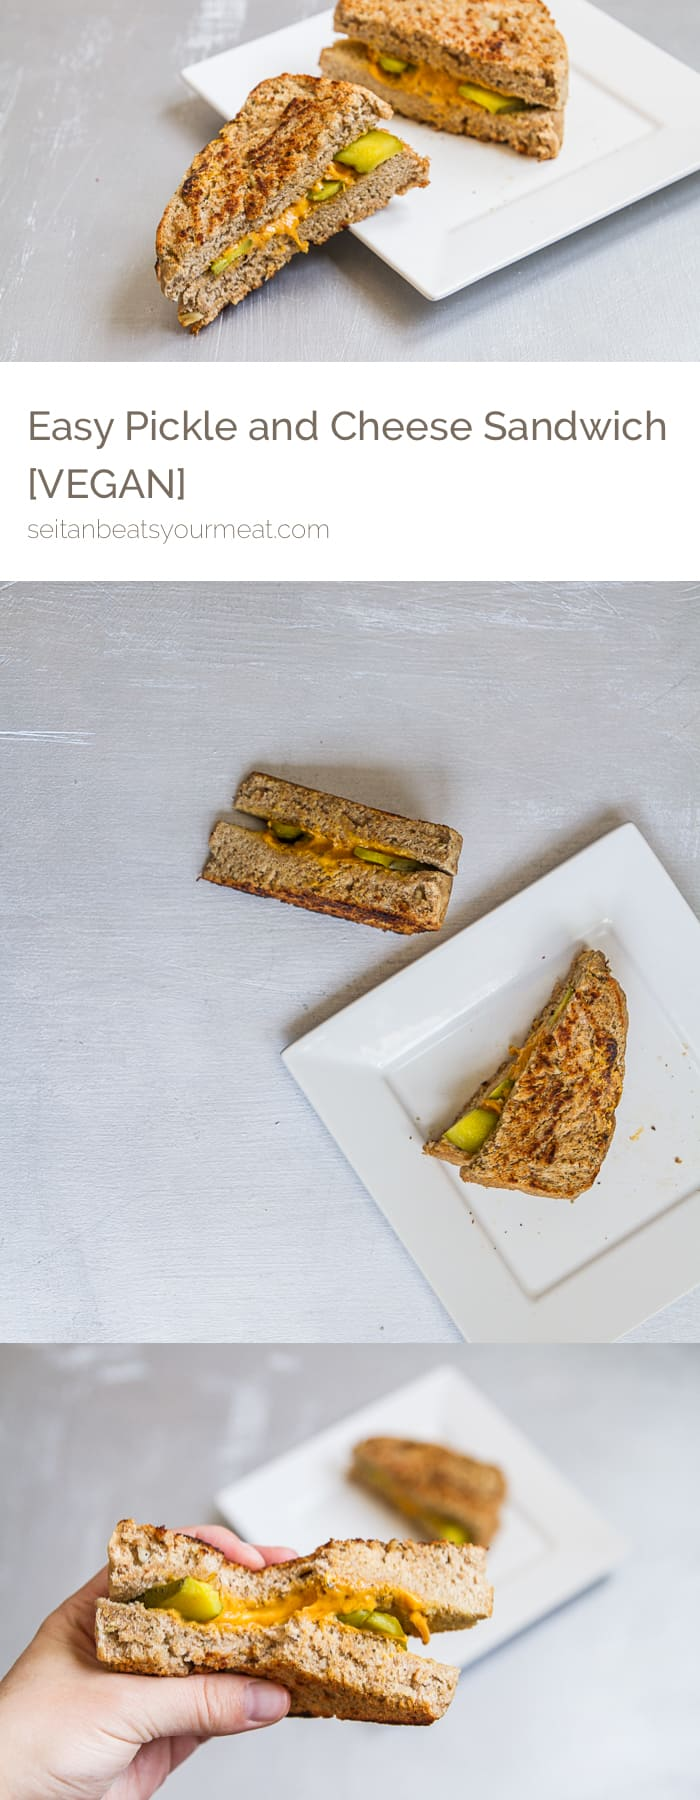 Easy, dairy-free grilled pickle and cheese sandwich